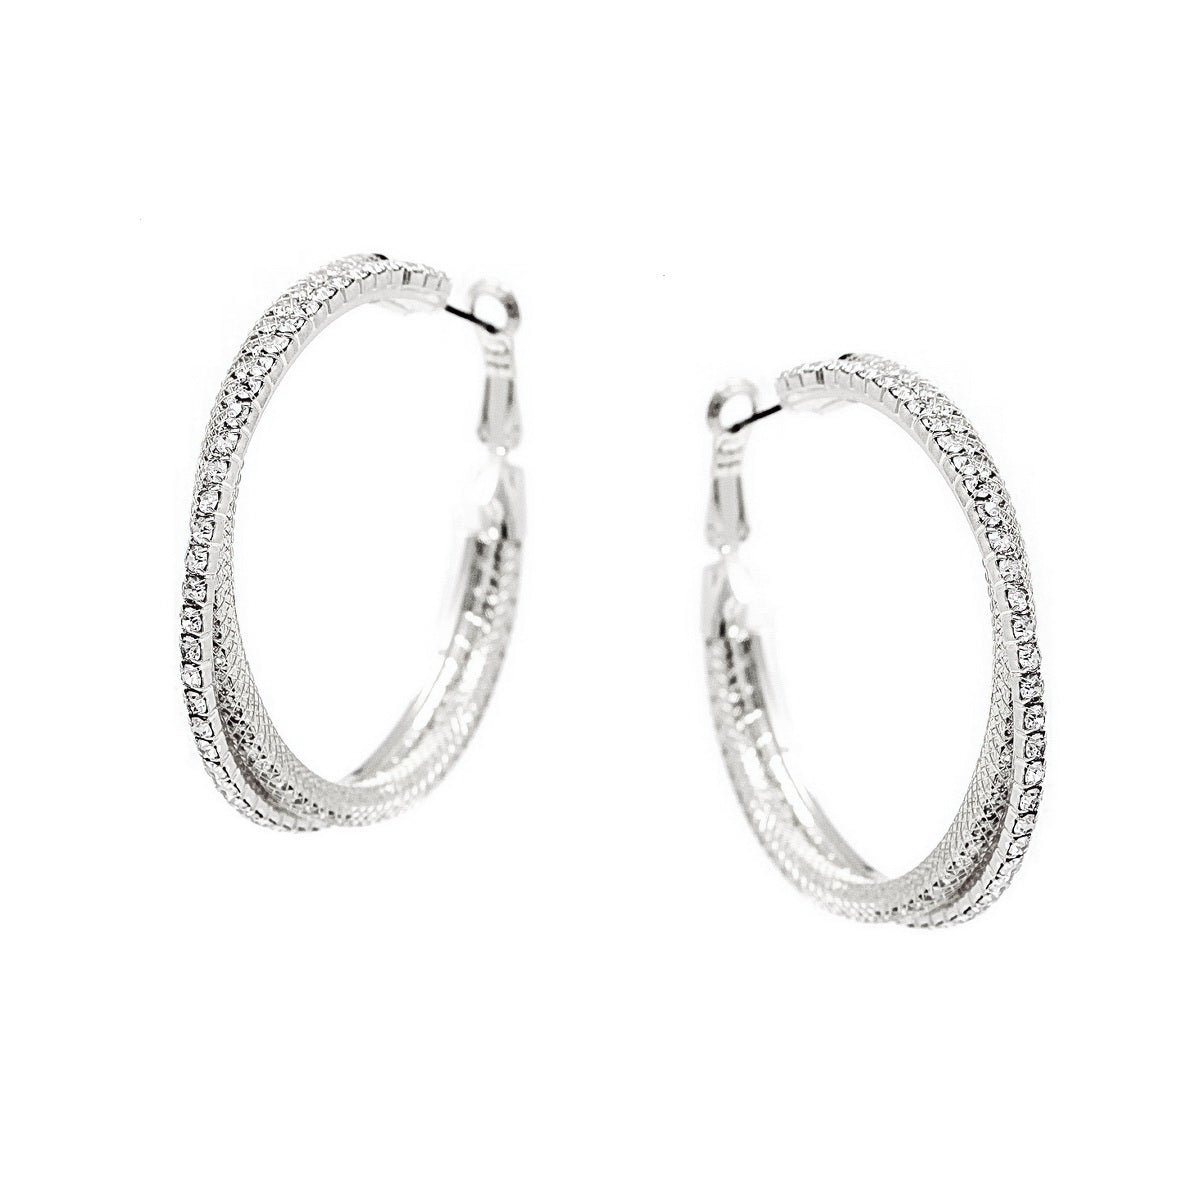 Rhinestone Pave Mesh Twisted Hoop Earrings (Small)